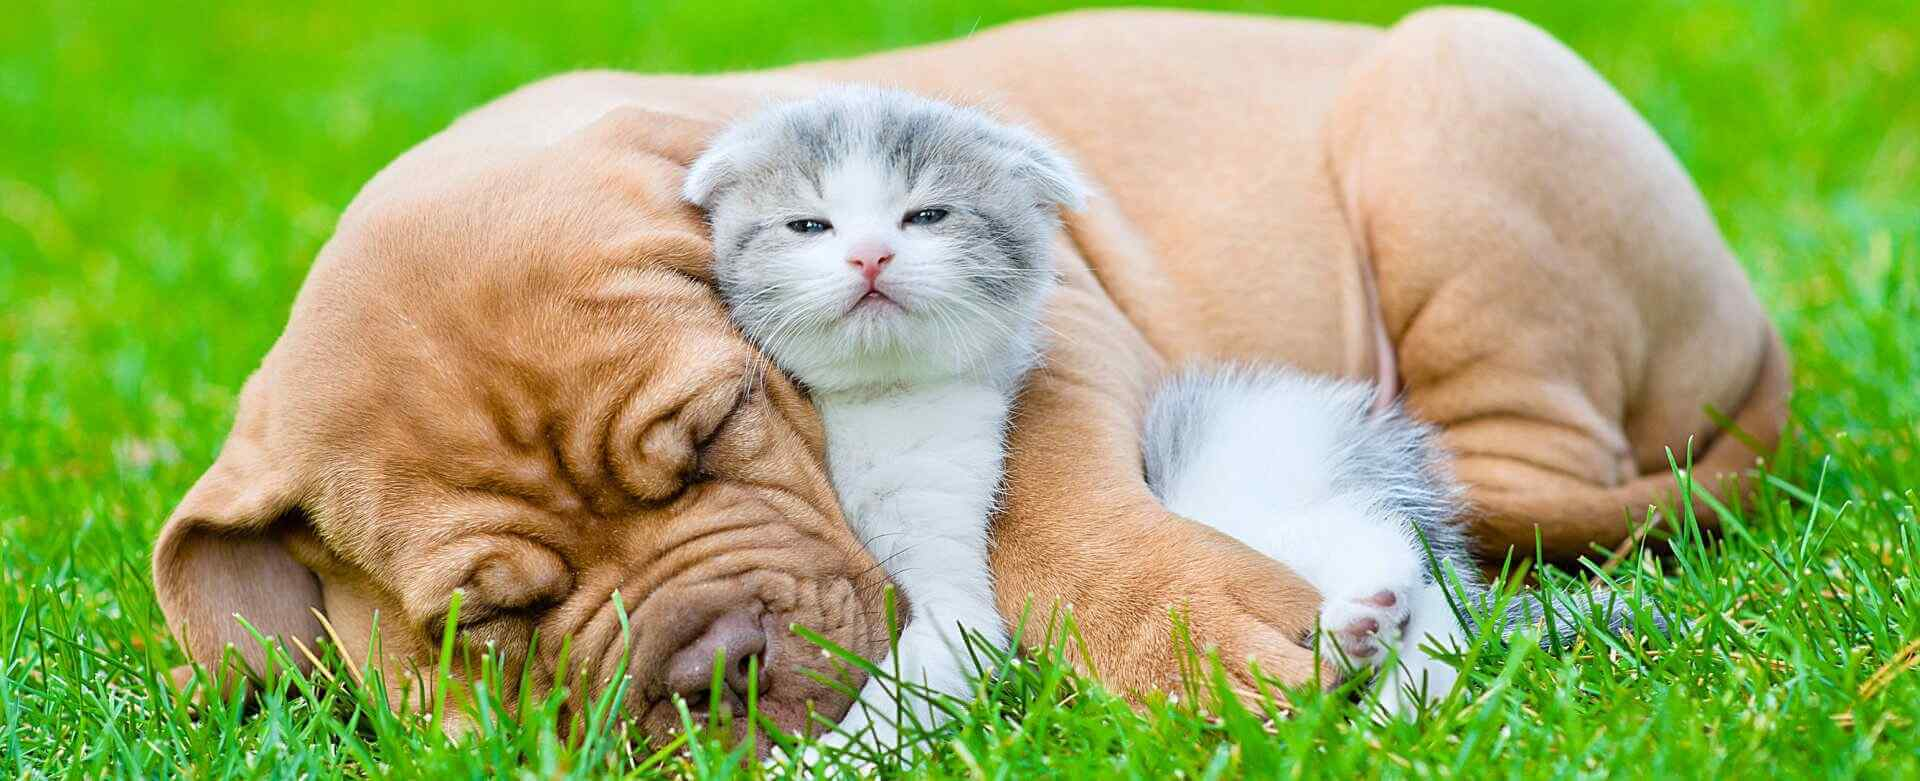 sleeping puppy hugs an adorable kitten